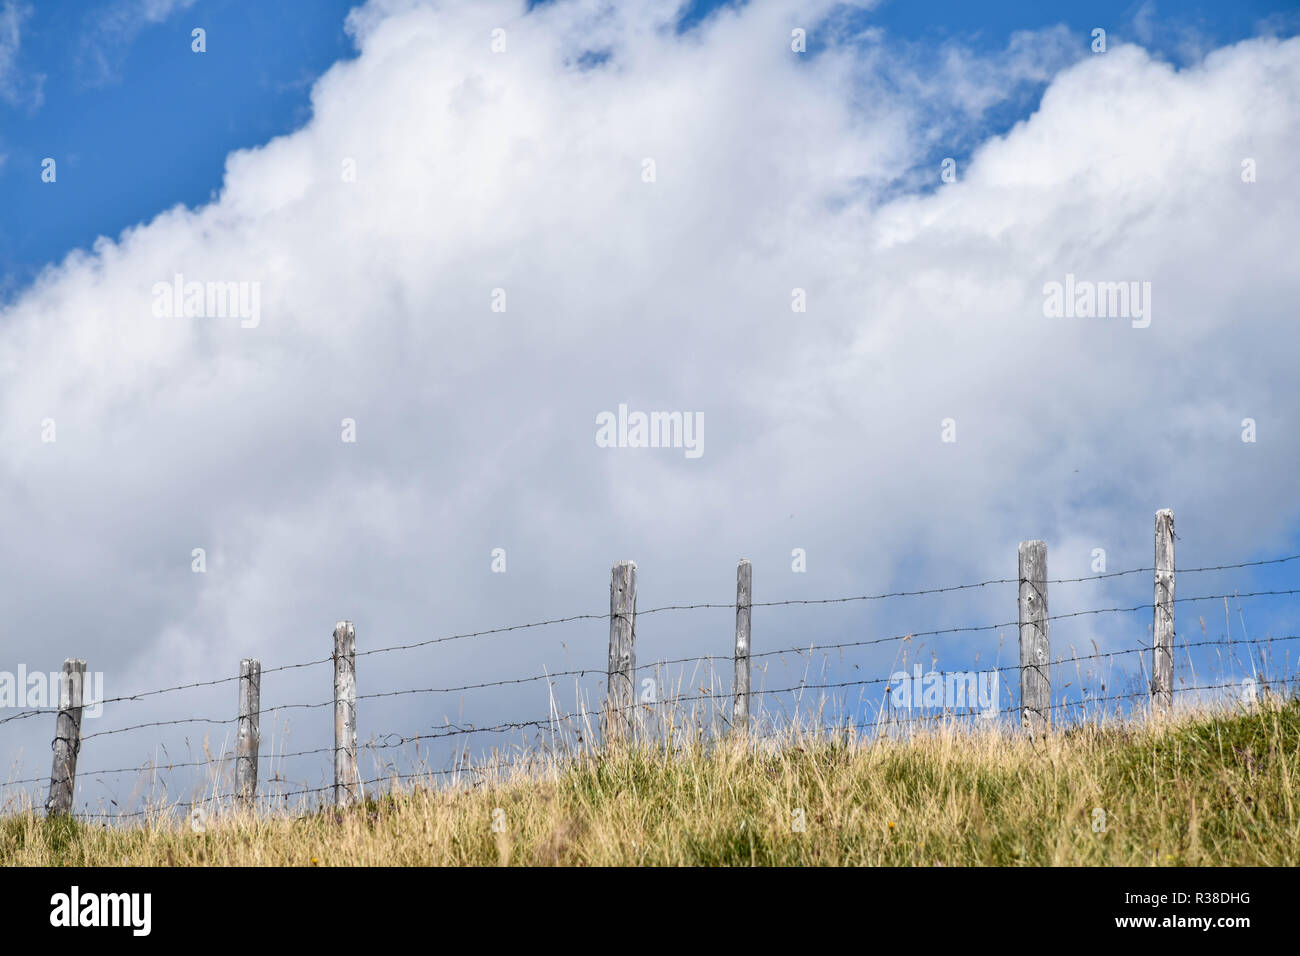 Barbwire fence in a yellow grass field, contrasting against clouds in the blue sky - Stock Image